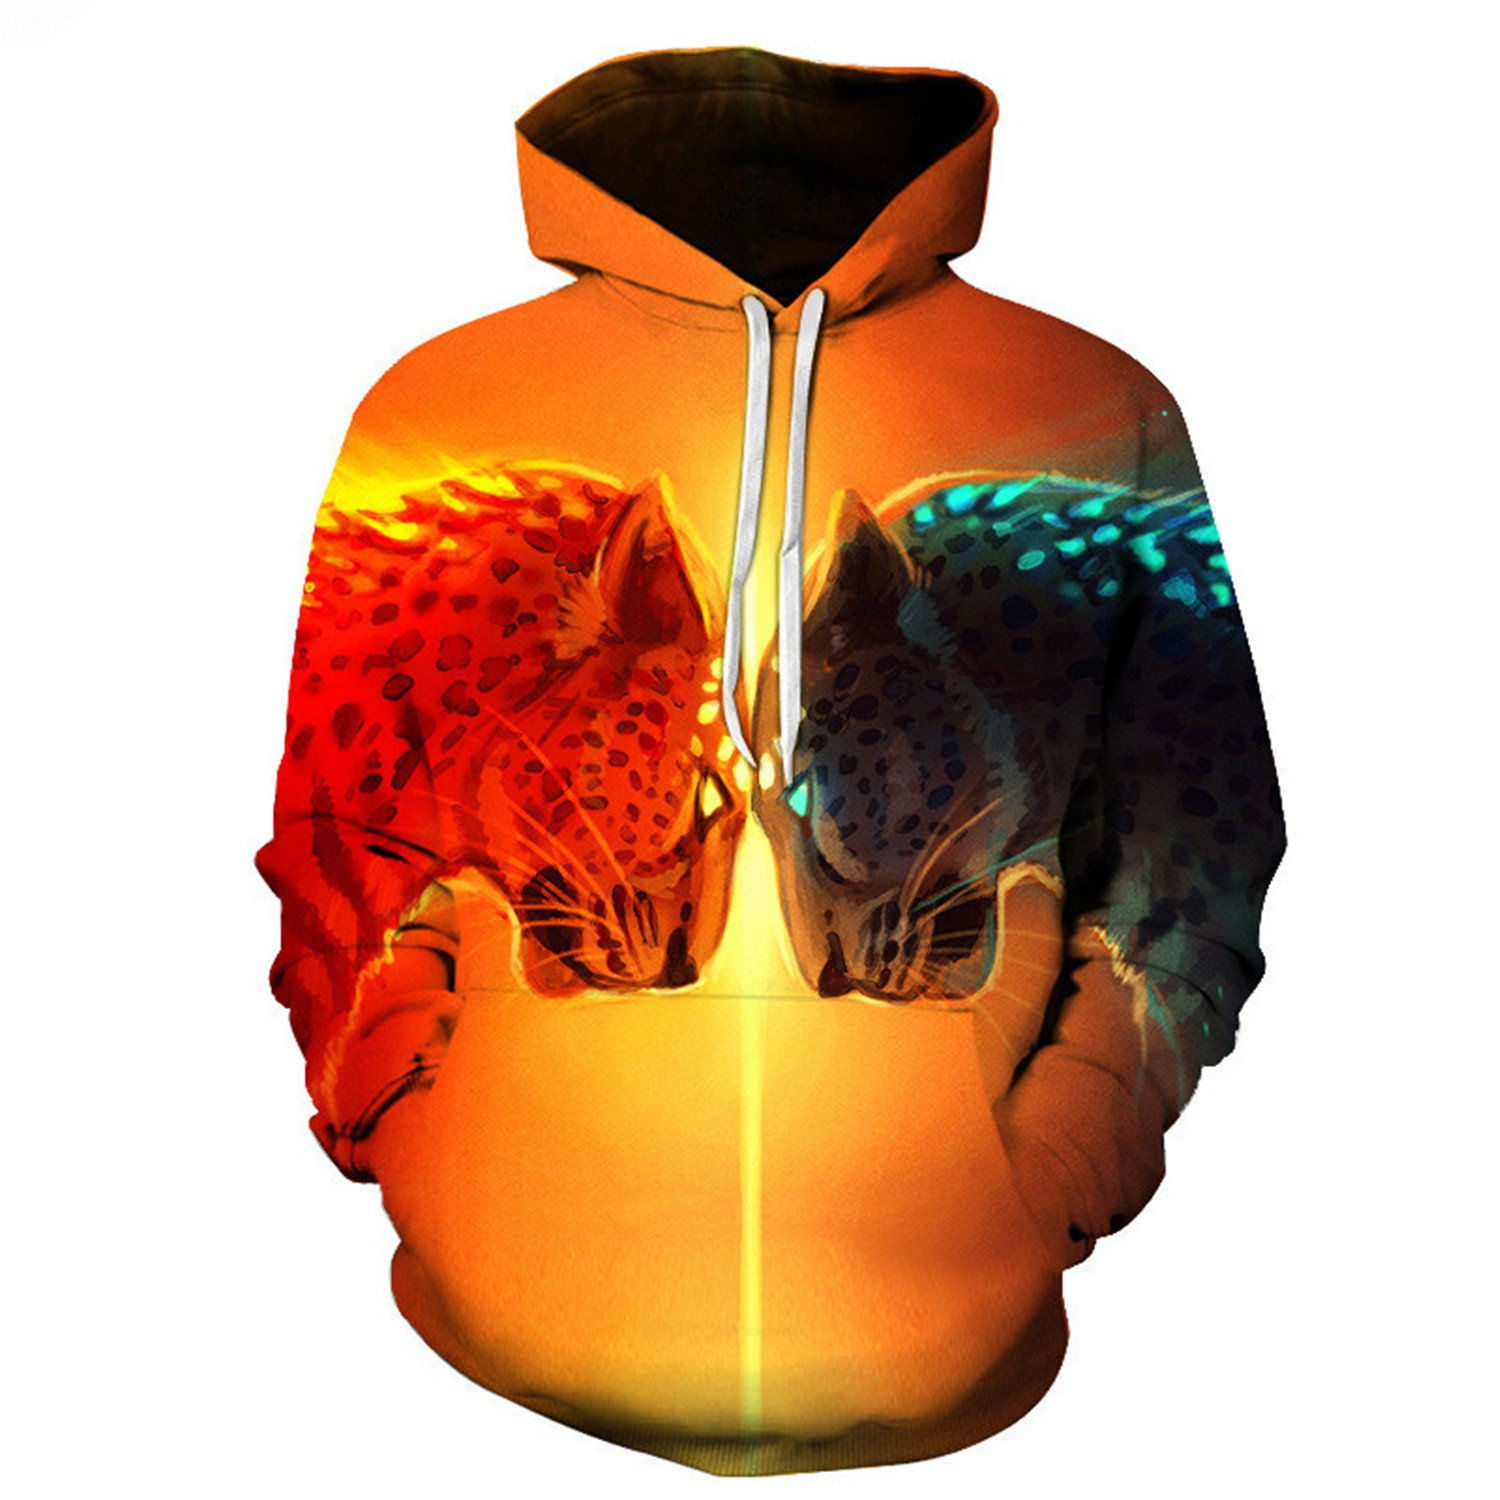 Matterin Christiao Leopard Printed 3D Brother Hoodies Sweatshirts MenS Pullover Autumn Animal Hoodies Hooded Jackets